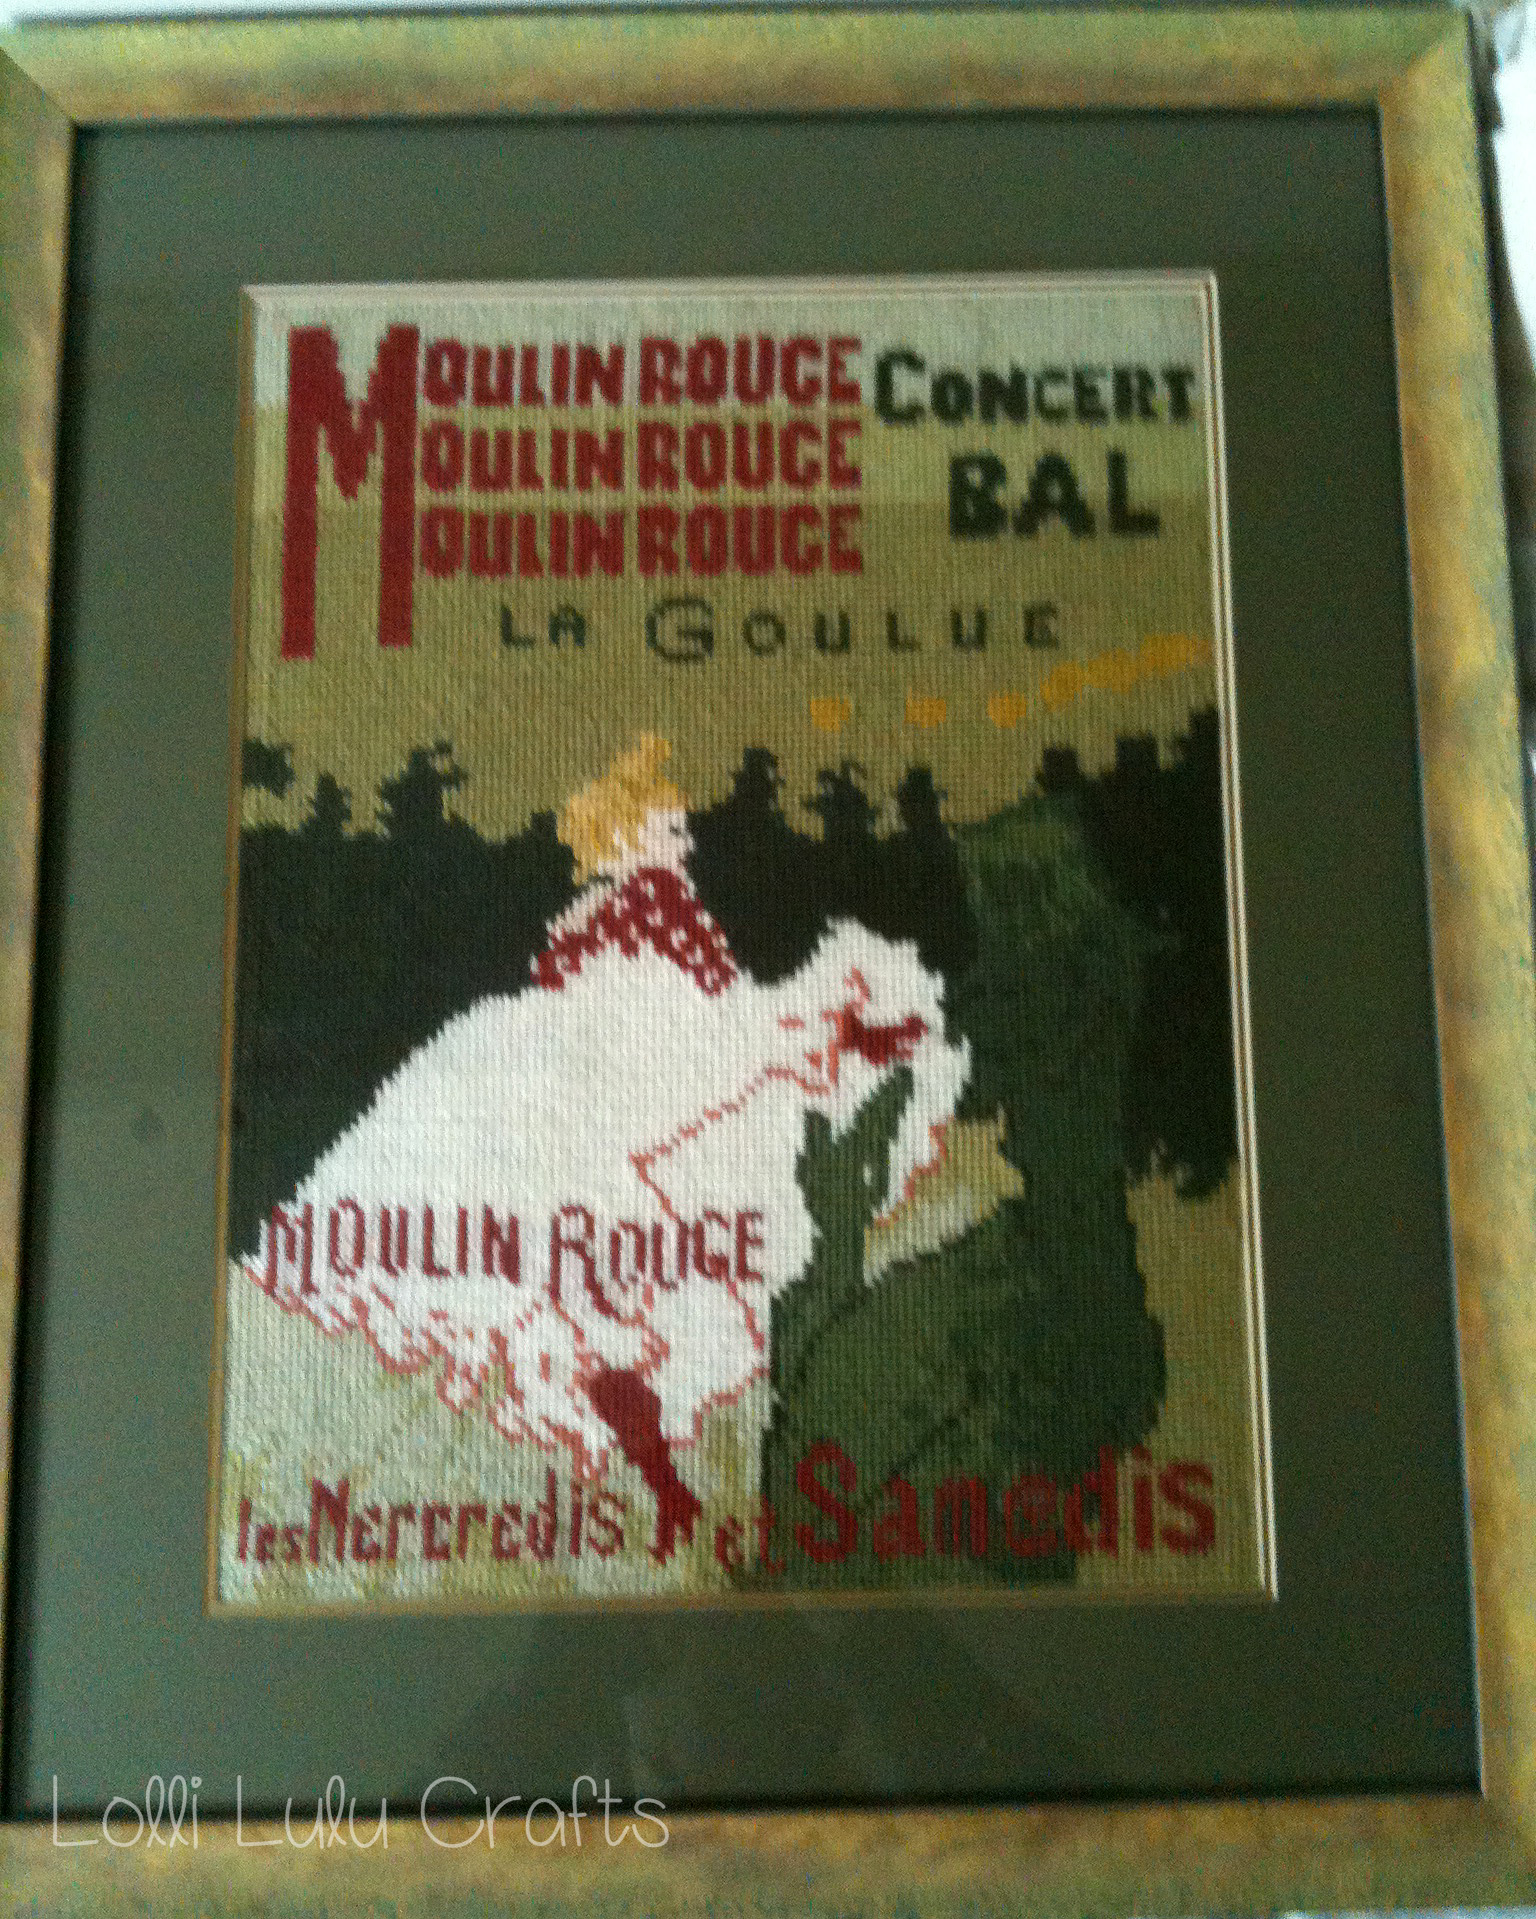 Smoulin rouge